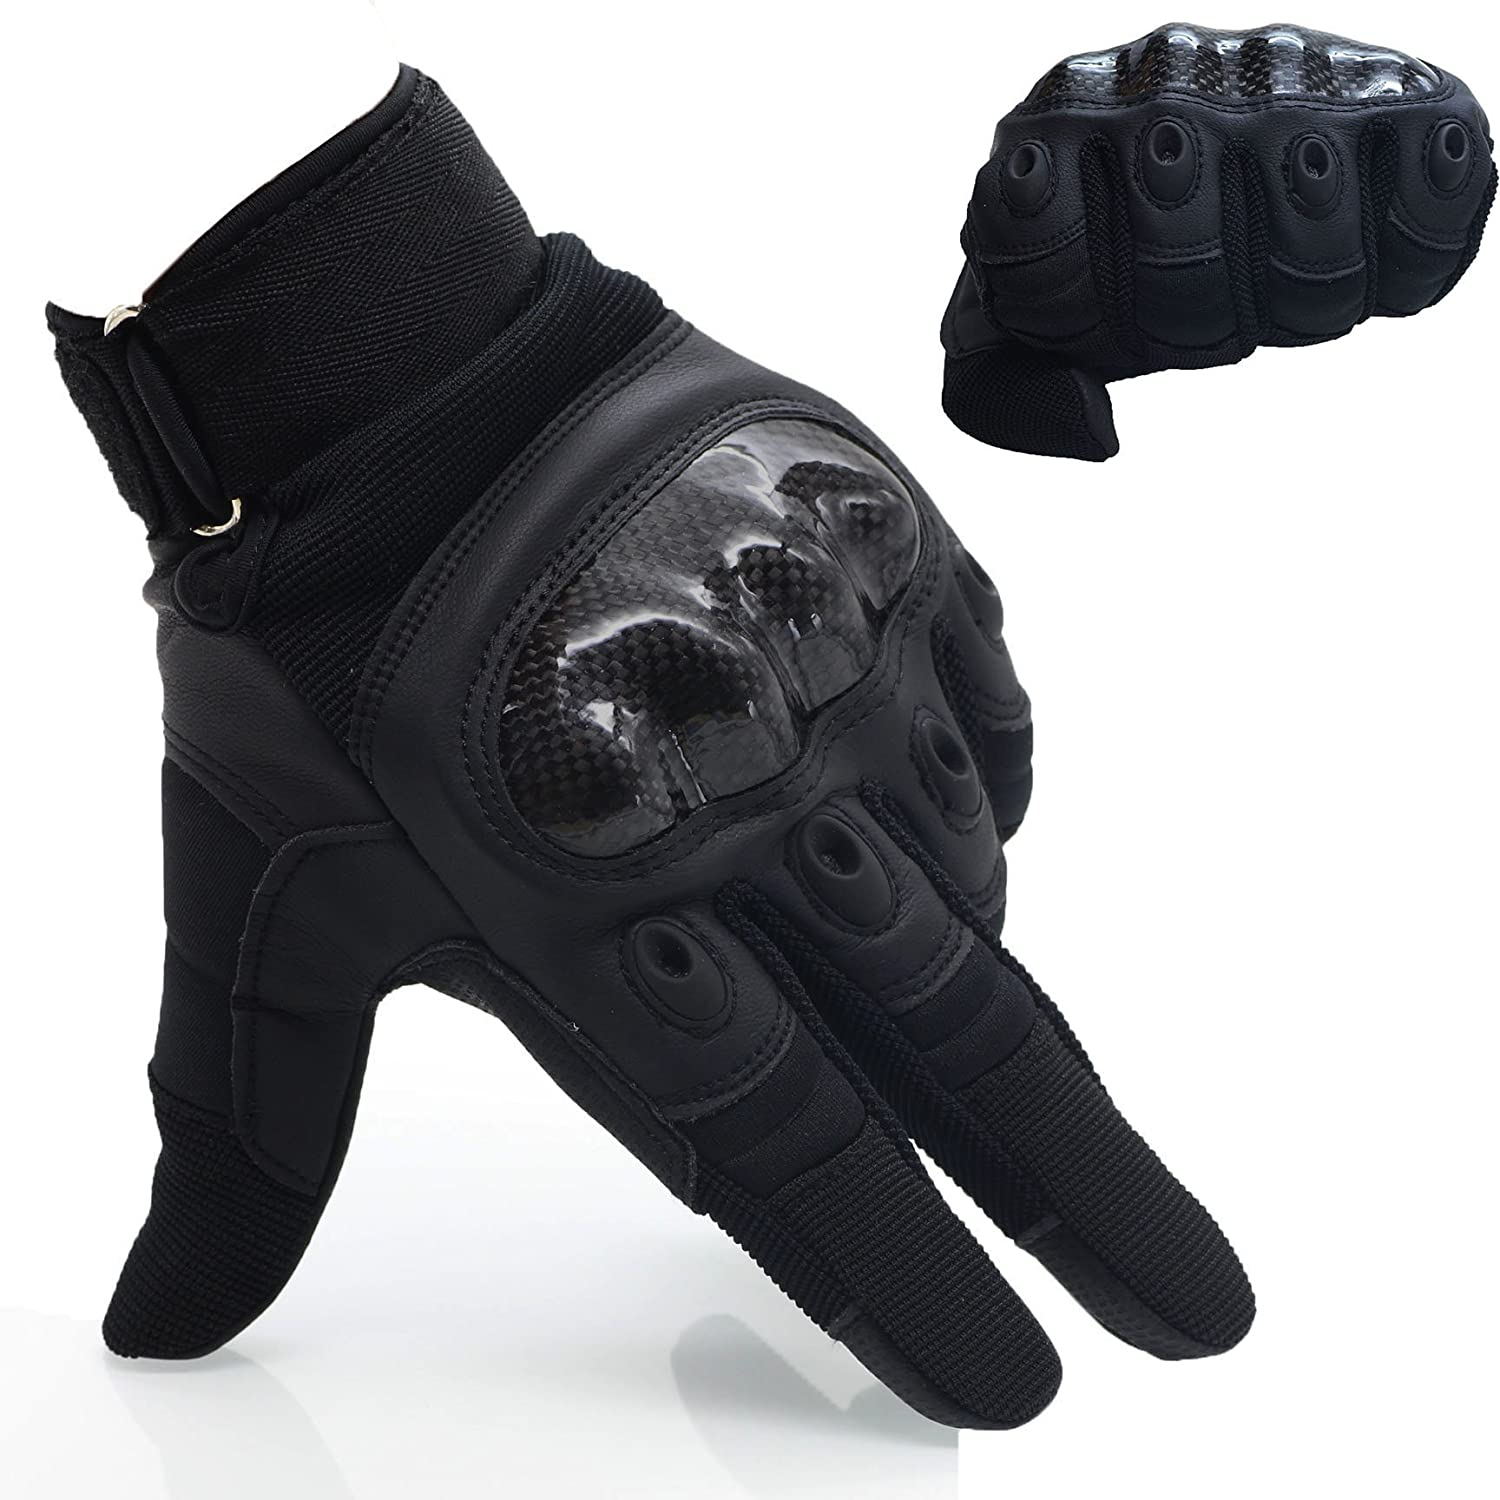 Omgai Upgraded Full Finger Motorcycle Gloves